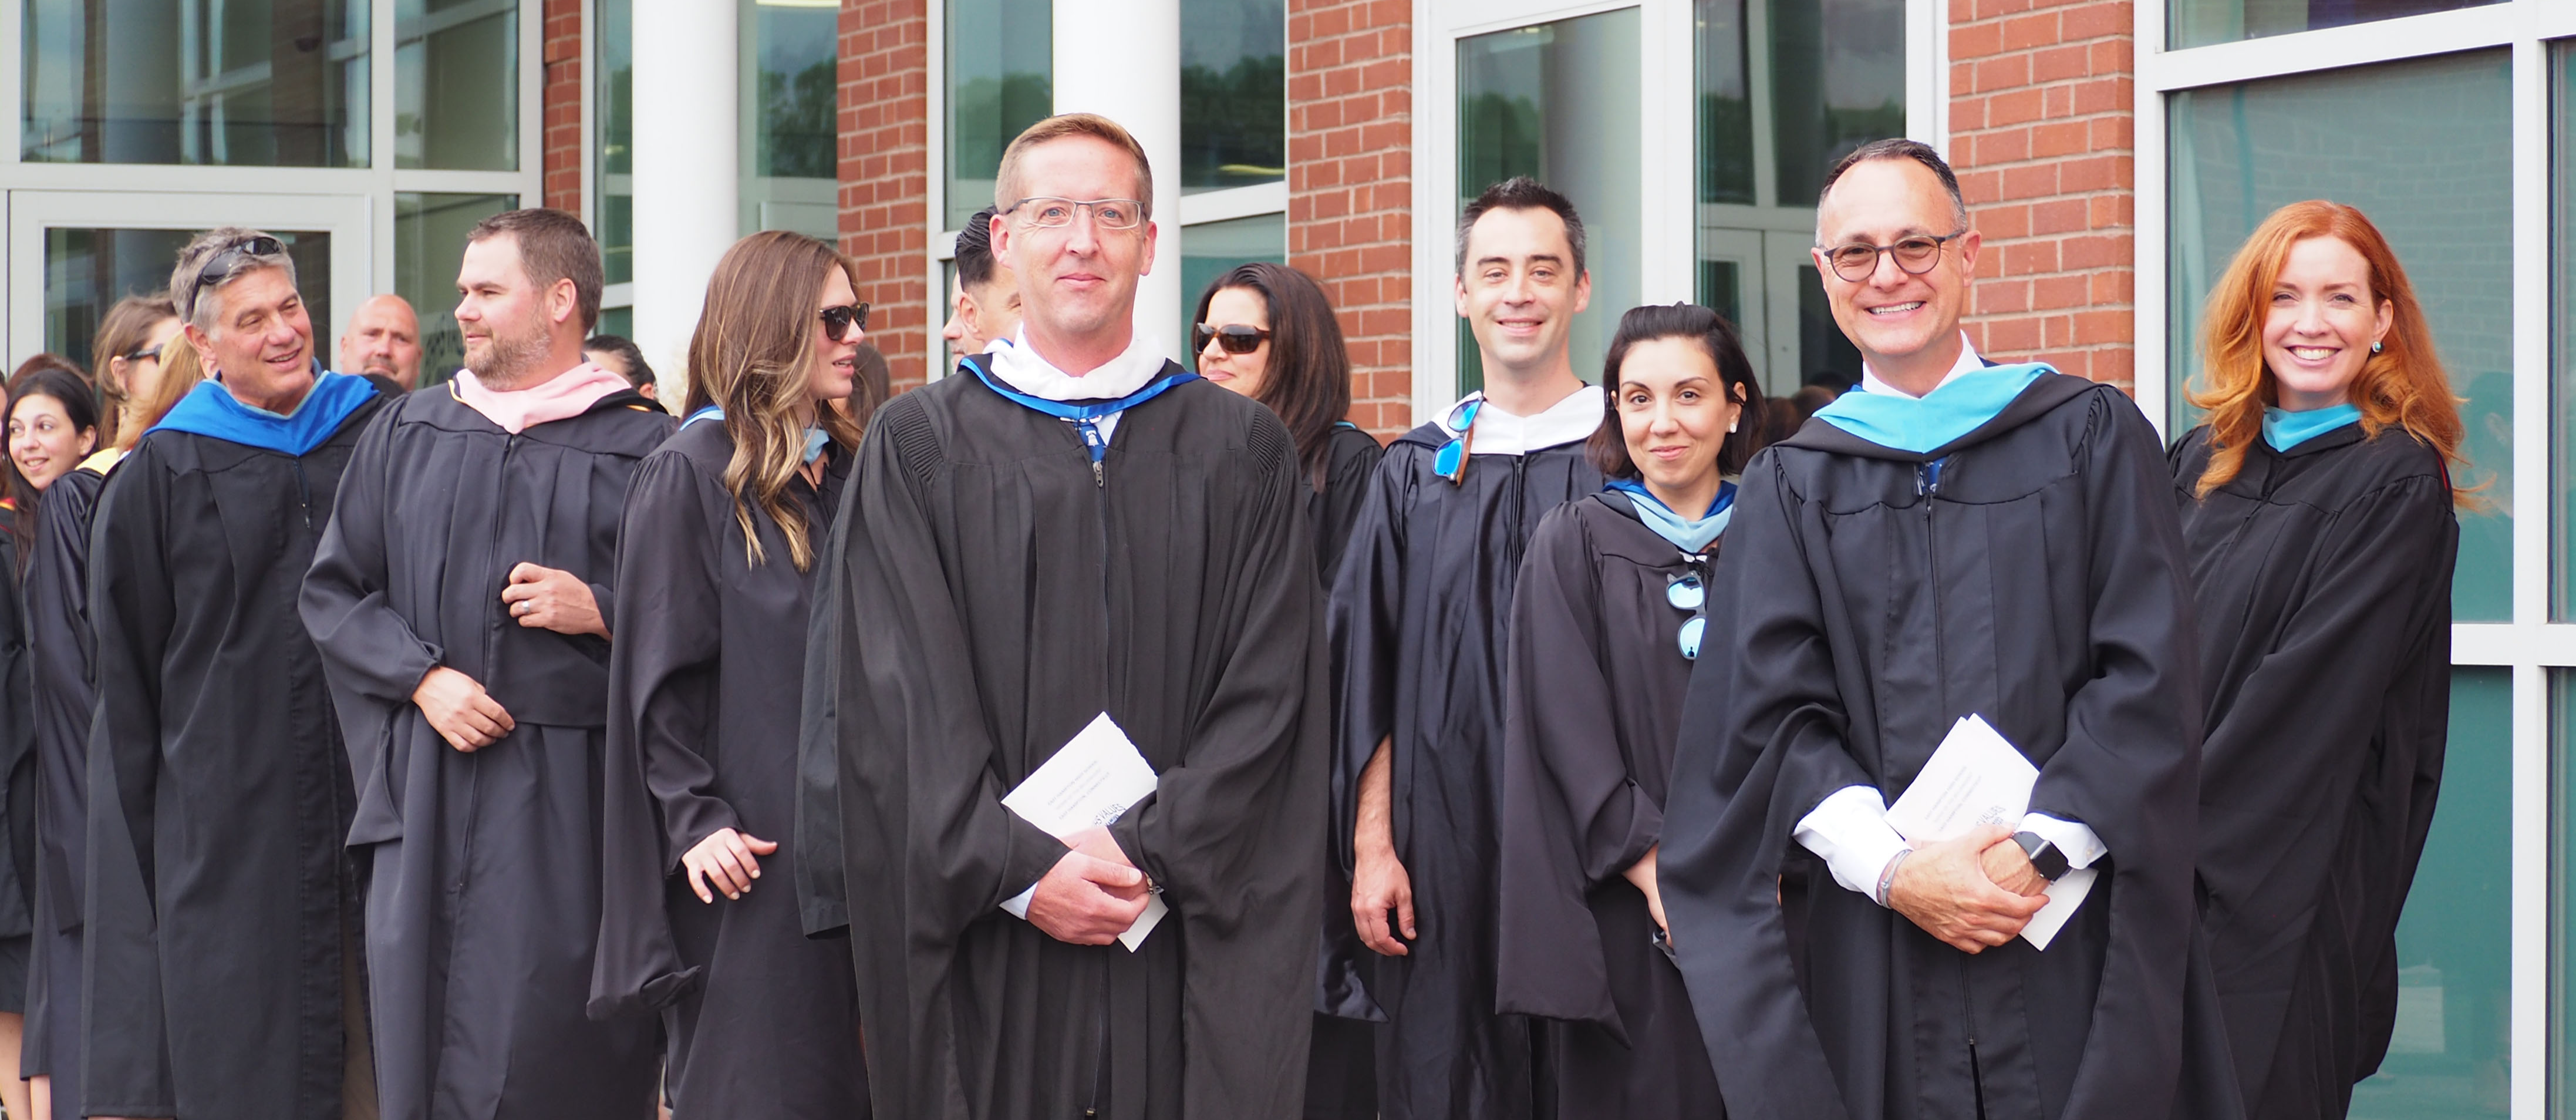 Factulty and Administrators priof to Graduation 2021 Processional